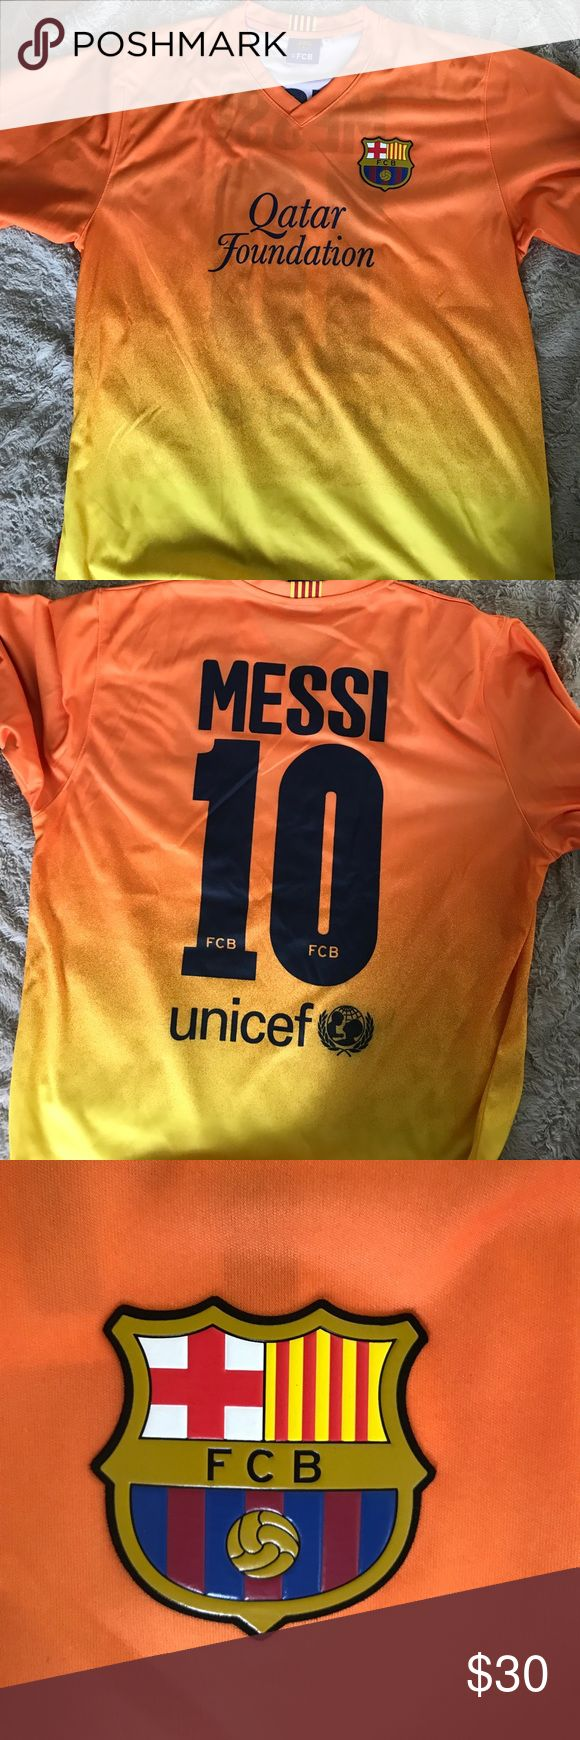 Qatar foundation Messi jersey Bought in Spain on vacation. Worn once, perfect condition. Bright colors FCB Shirts Tees - Short Sleeve